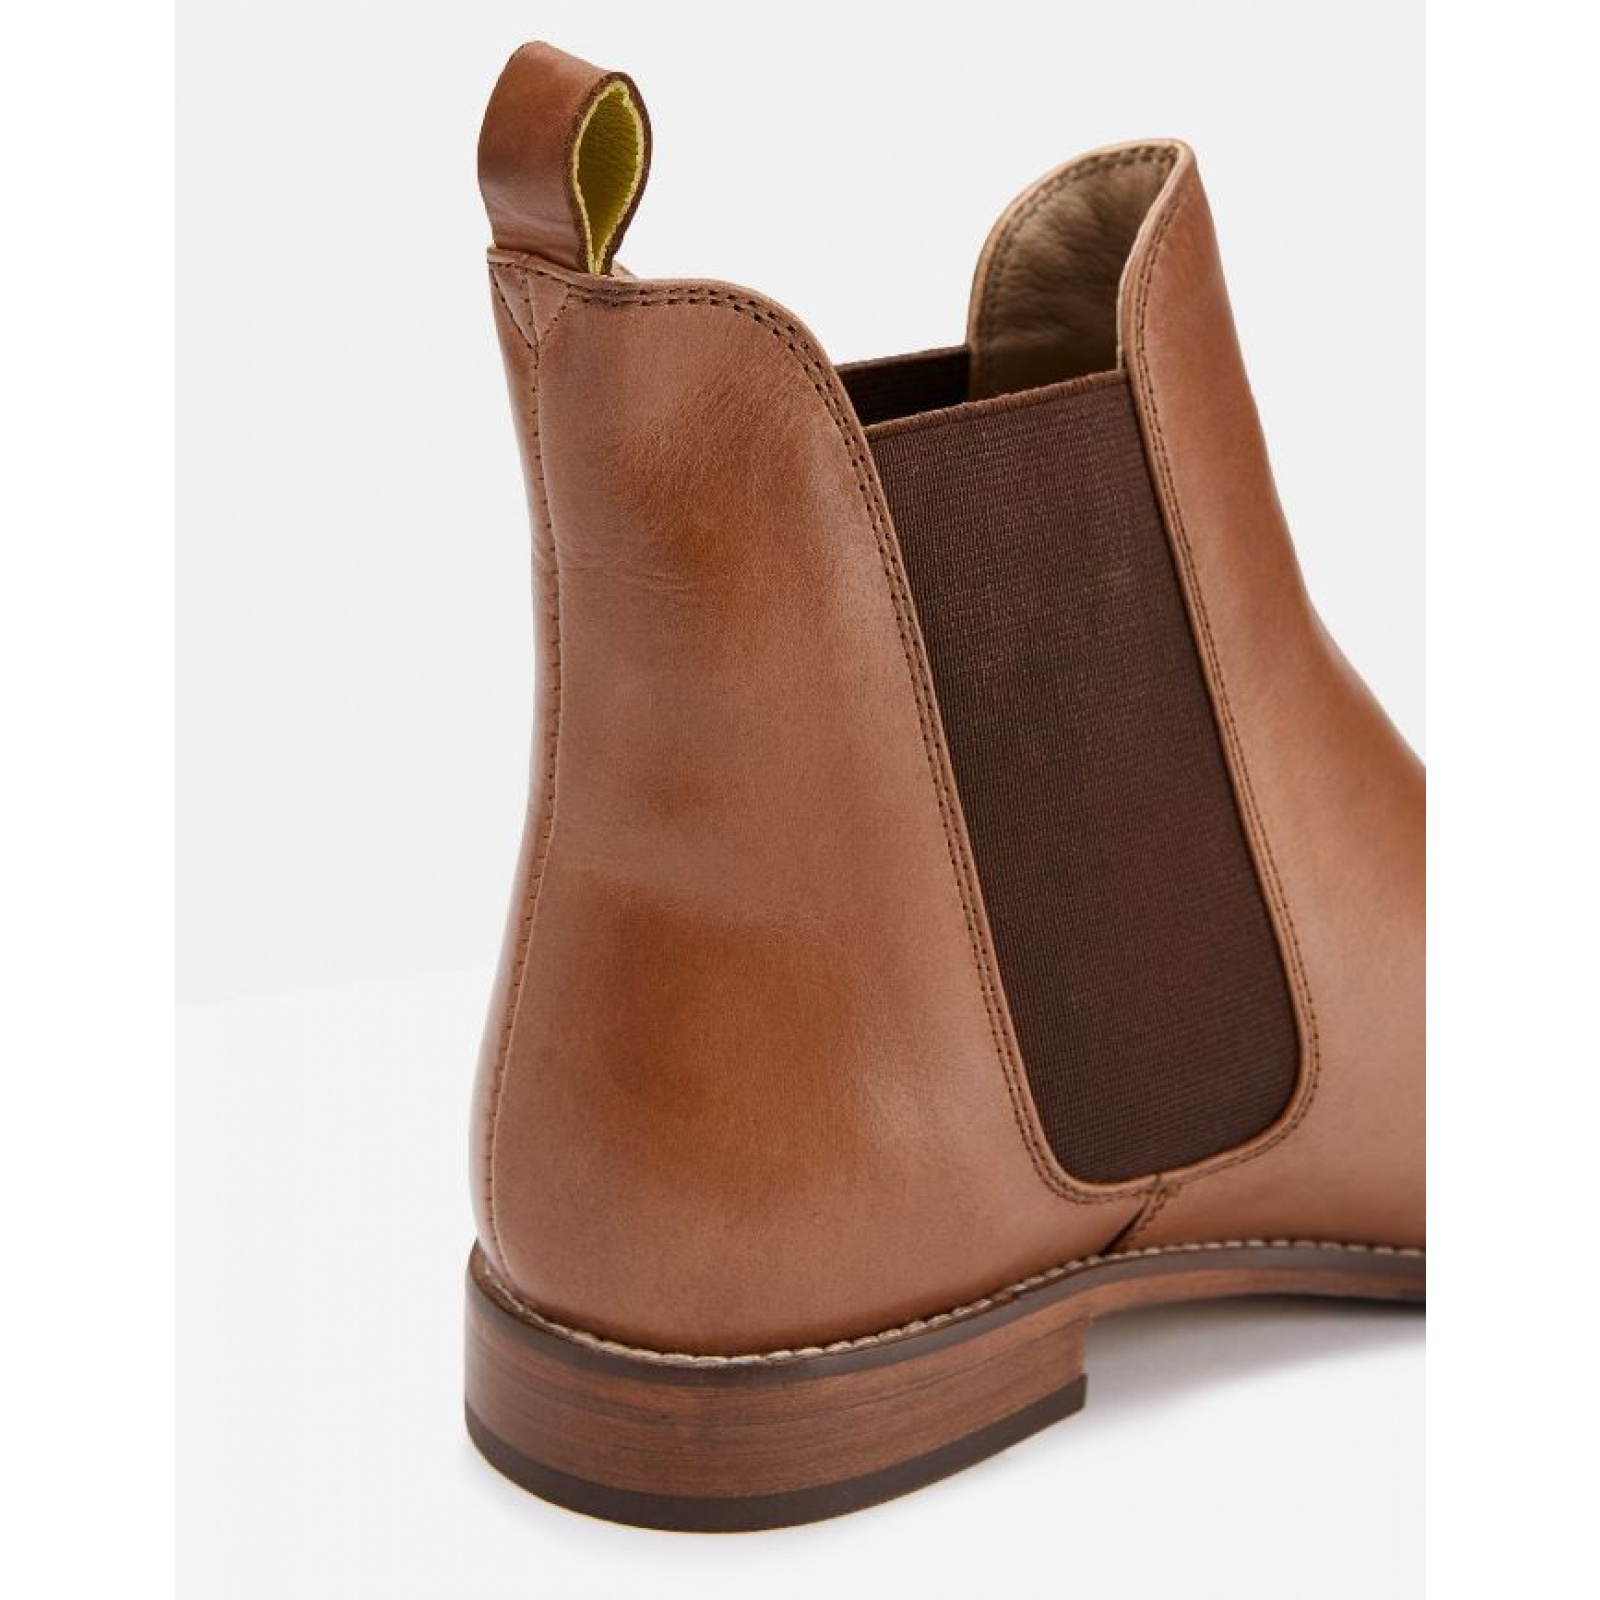 Joules-Westbourne-Premium-Leather-Chelsea-Boot-ALL-COLOURS miniature 24